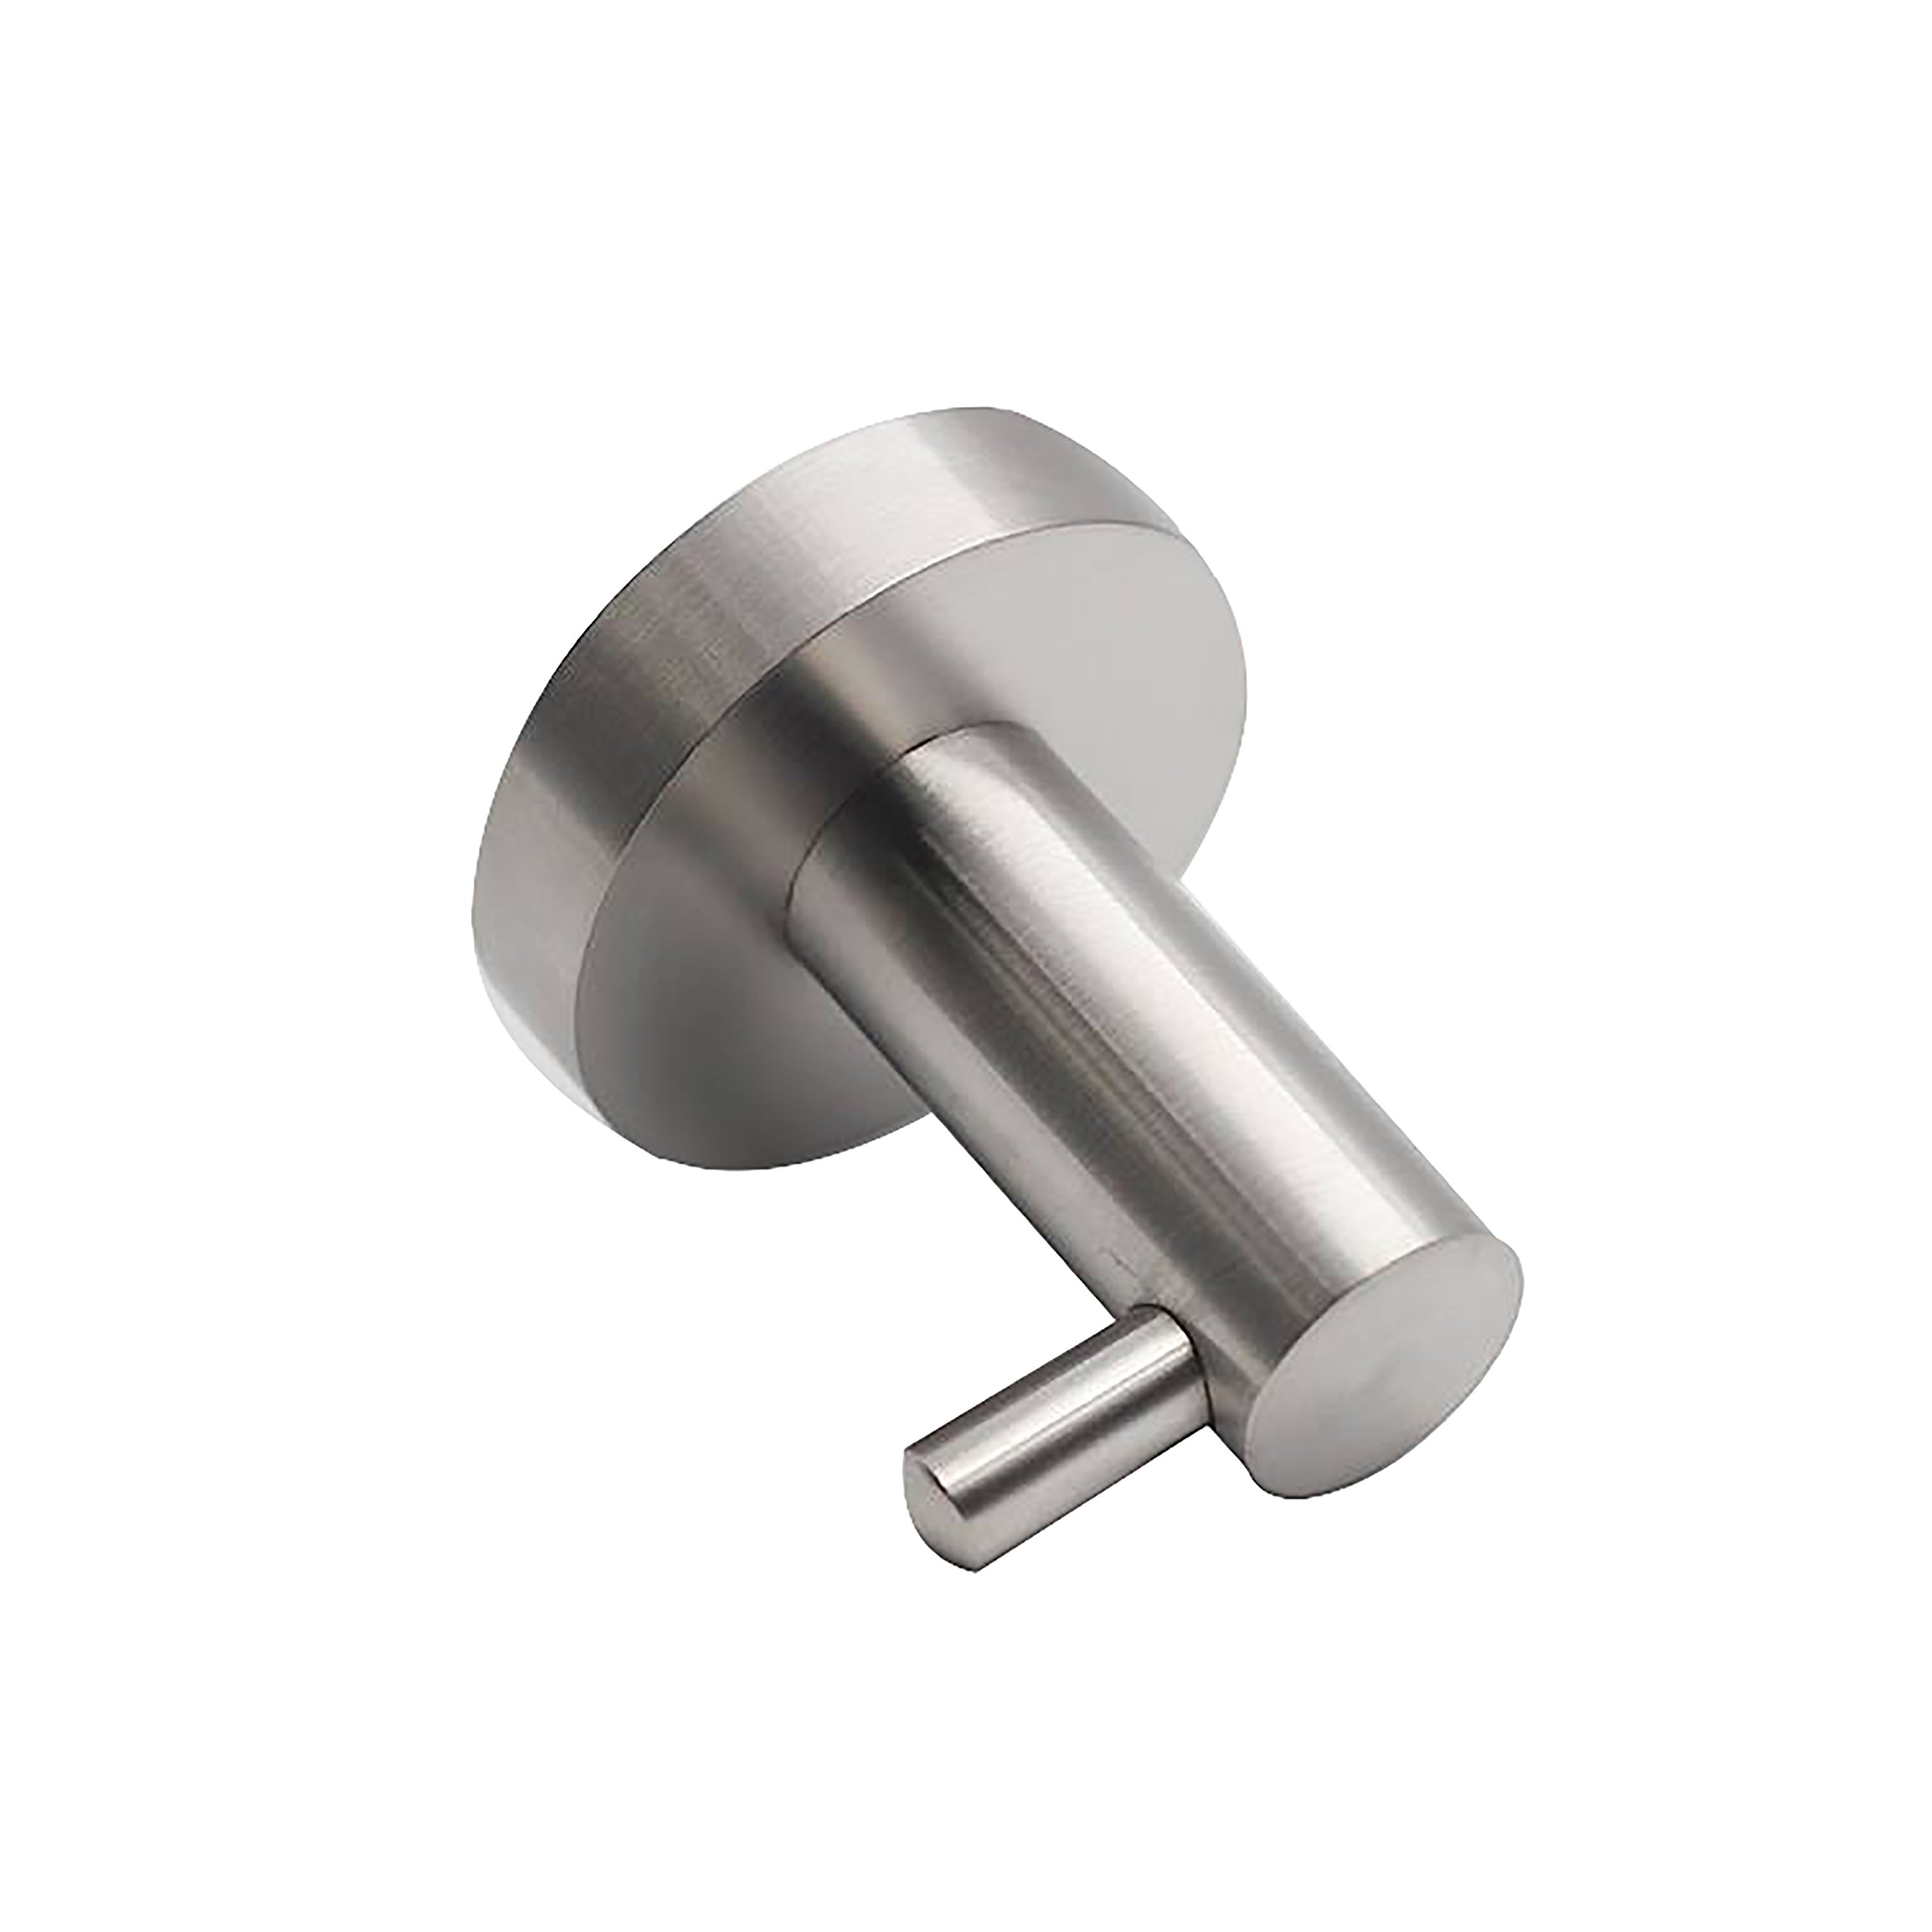 QT Home Decor Premium Modern Single Coat Hook Perfect for Towels/Robes/Clothes for Bathroom, Kitchen, Garage - Easy to Install and Made of Solid Stainless Steel